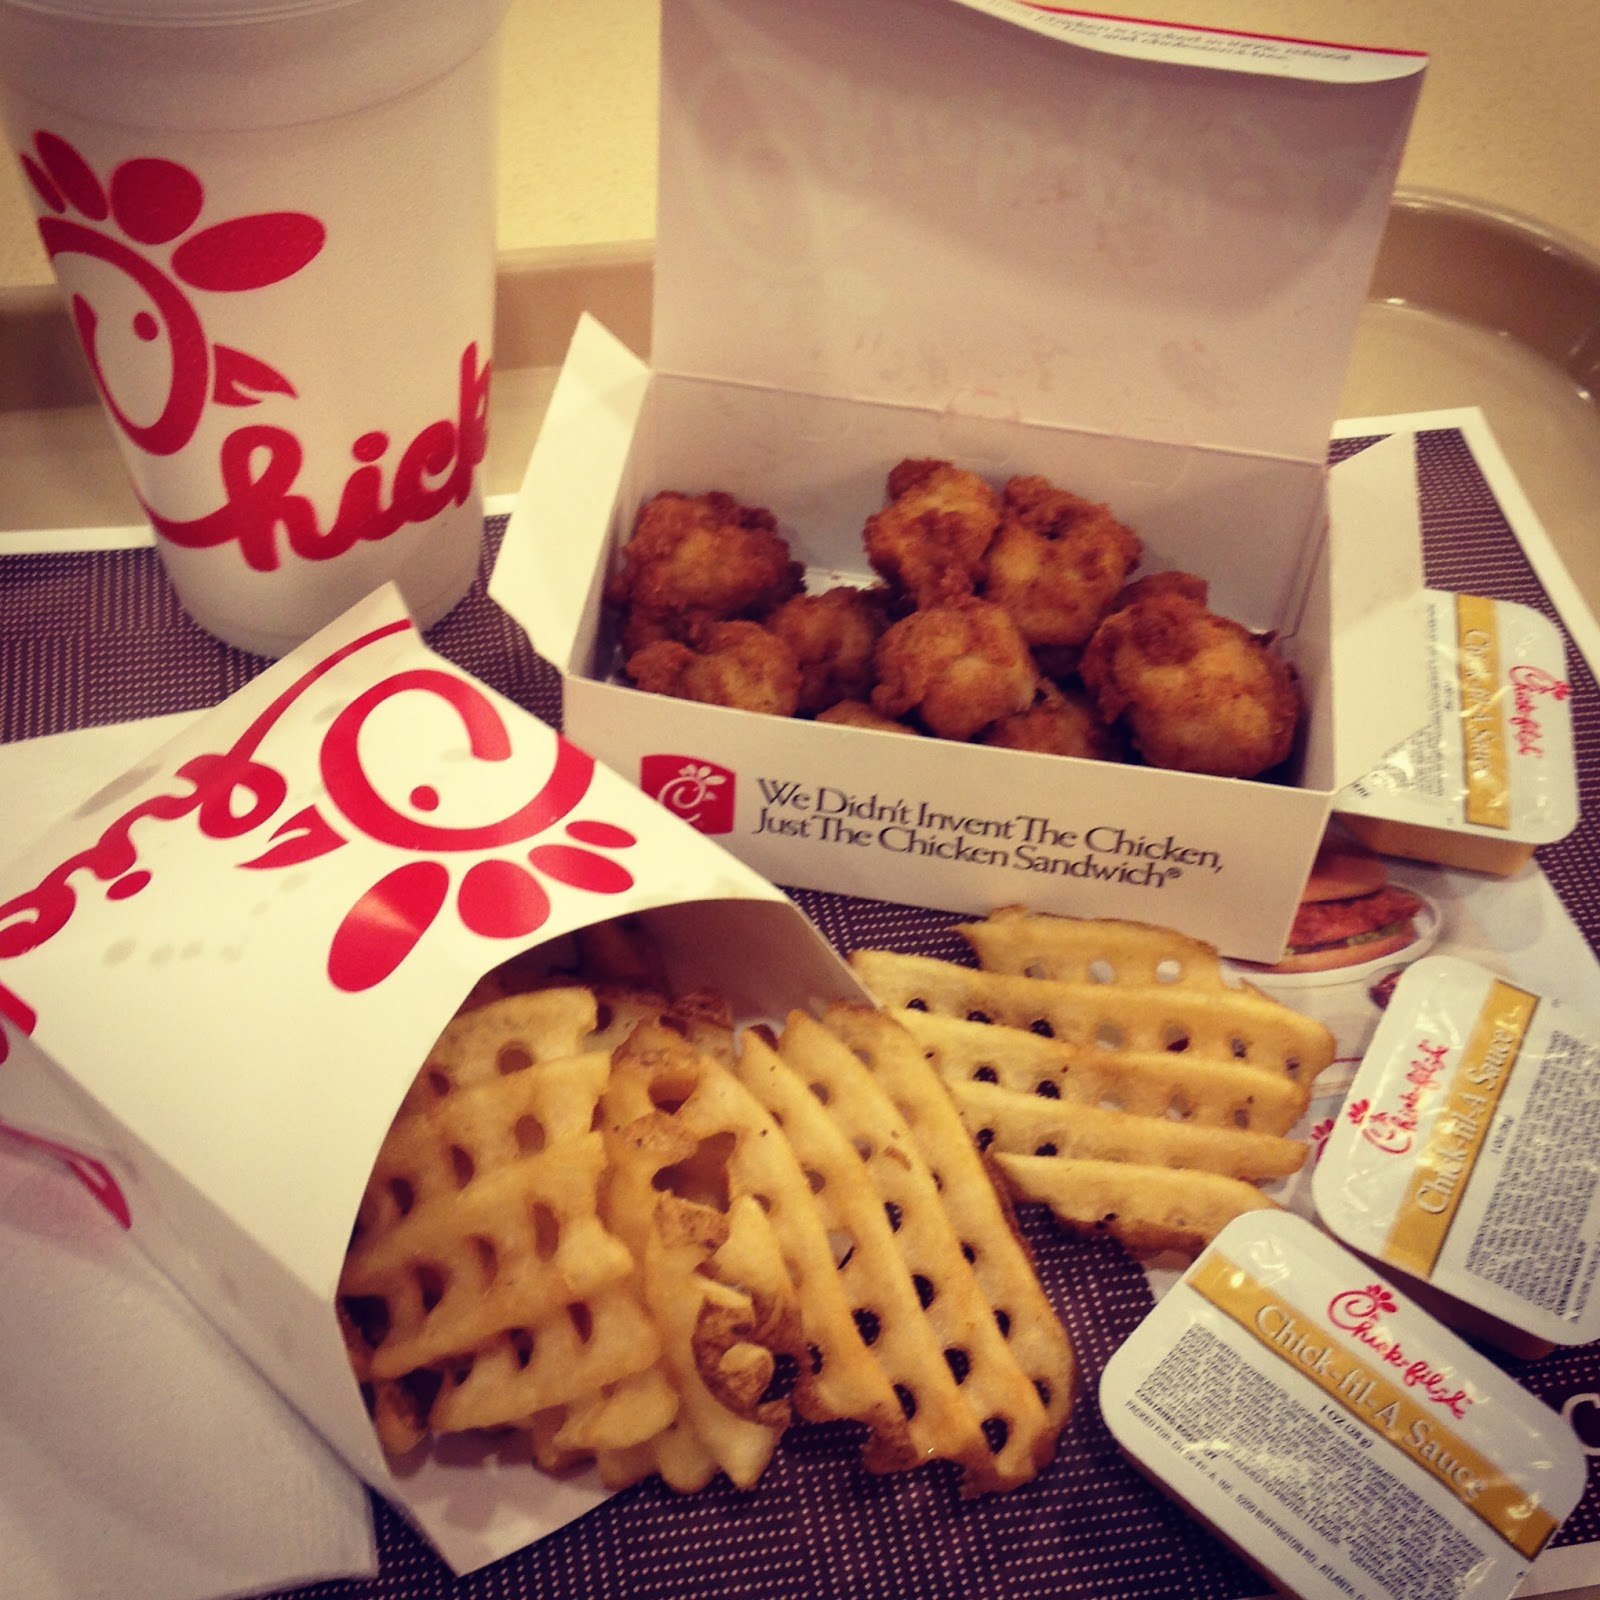 chick-fil-a, chicken nuggets, nuggets, chicken, waffle fries, special sauce, fries, food, fast food, good food, yummy chicken, chicken and waffles, ketchup, homeade leomnade